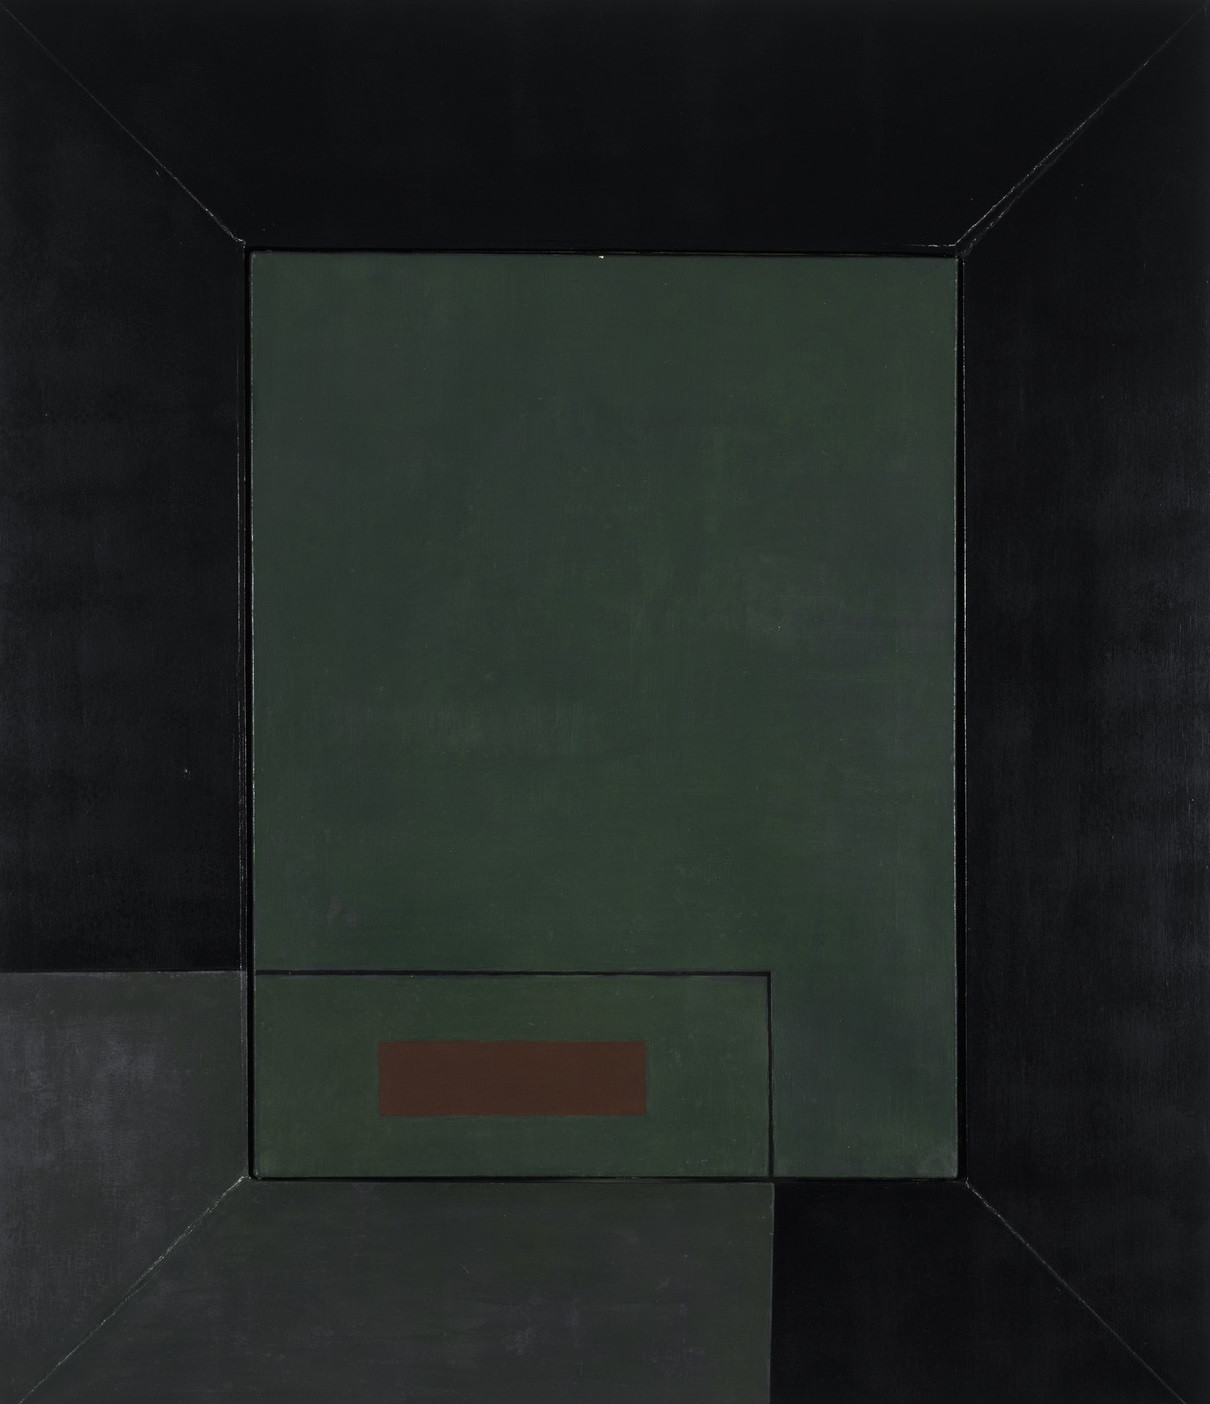 Lygia Clark. Breaking the Frame. Composition no. 5. 1954